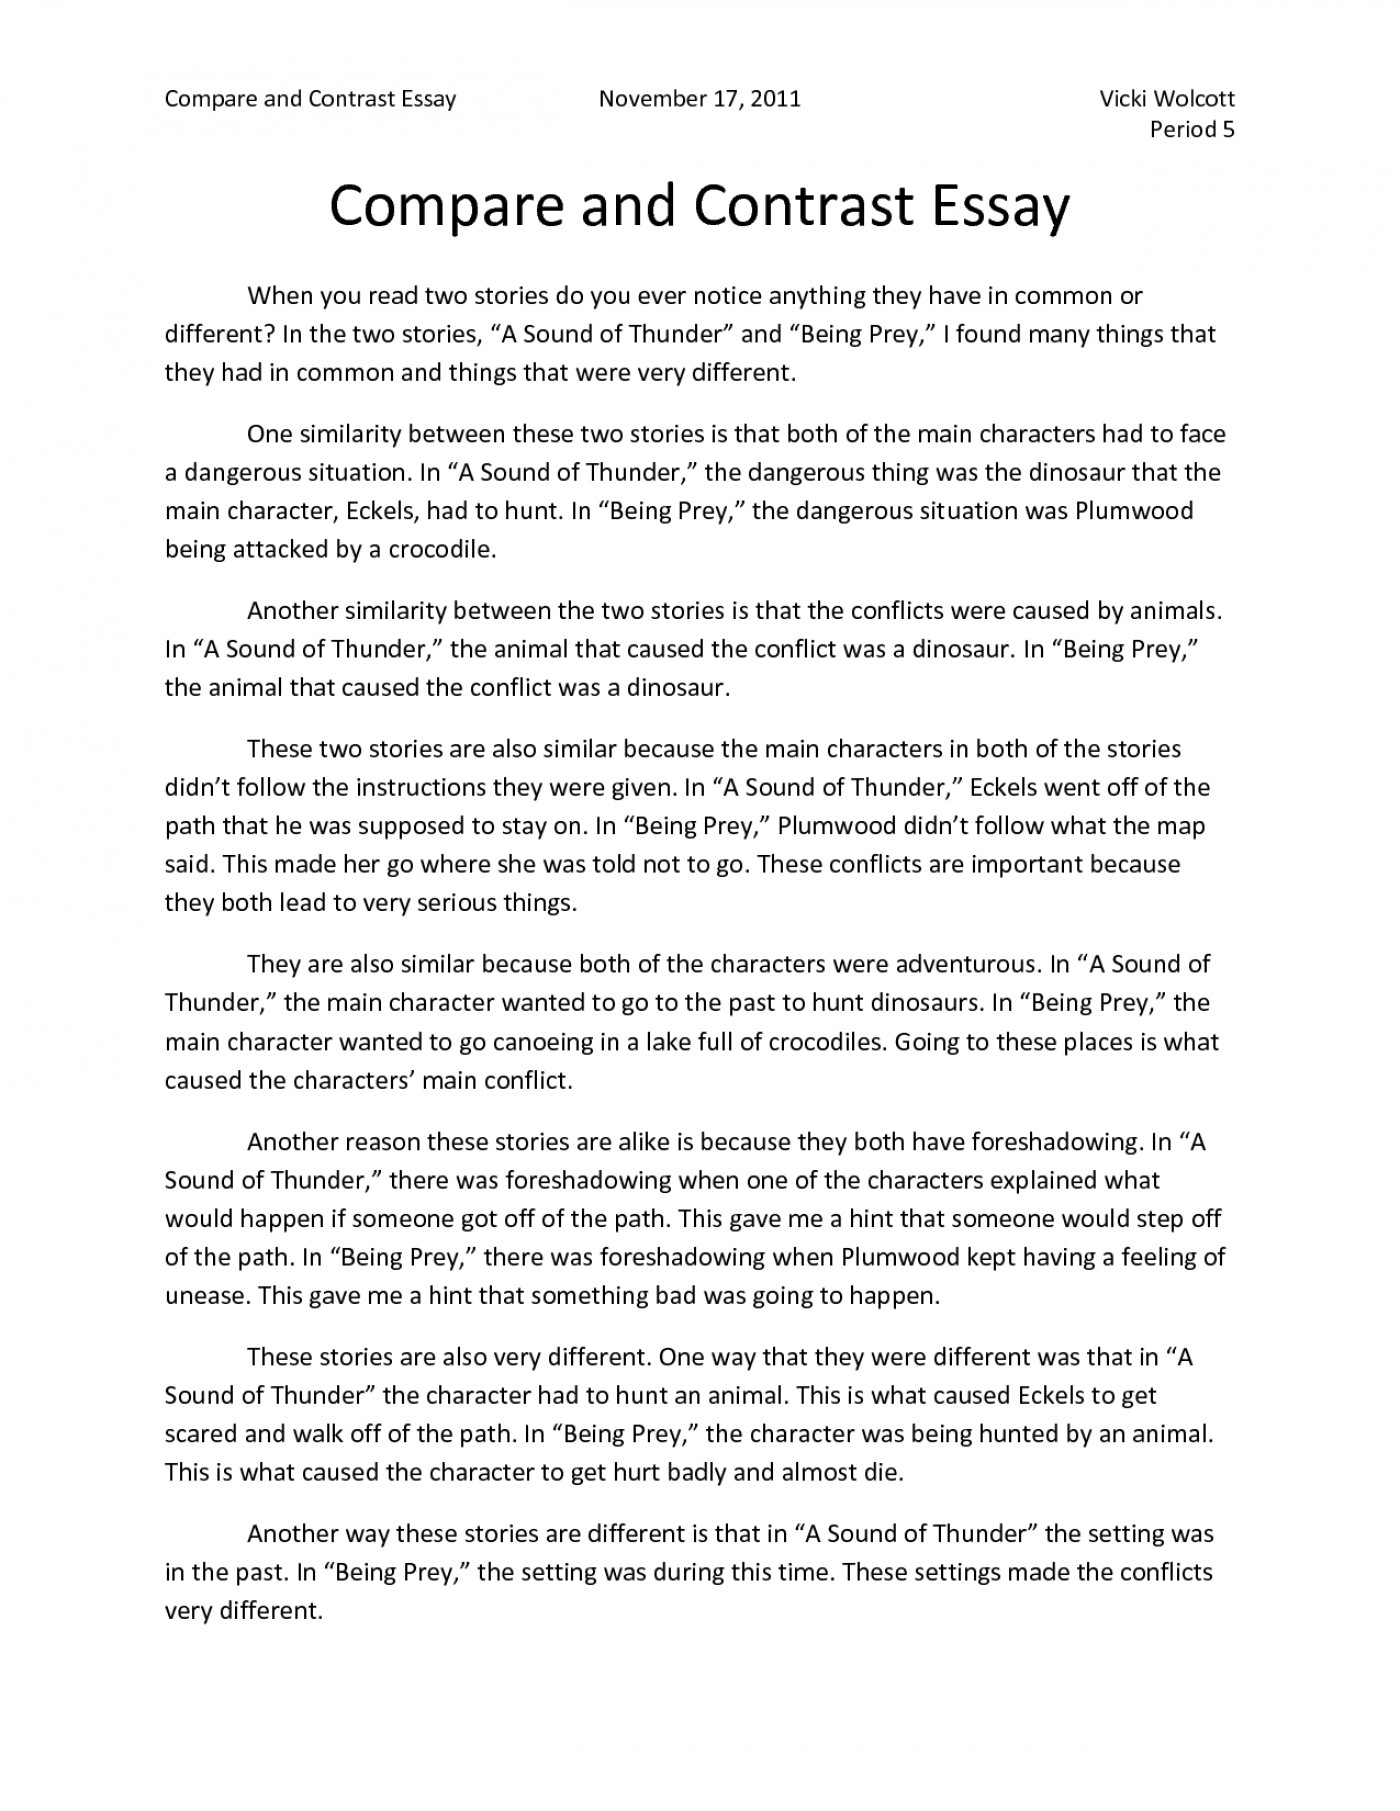 004 Essay Example Compare And Contrast Gallery Template Drawing Art Throughout College Examples Introduction Question Scholarship Free Edexcel Conclusion Frightening Prompts 5th Grade Rubric Ideas 12th 1400